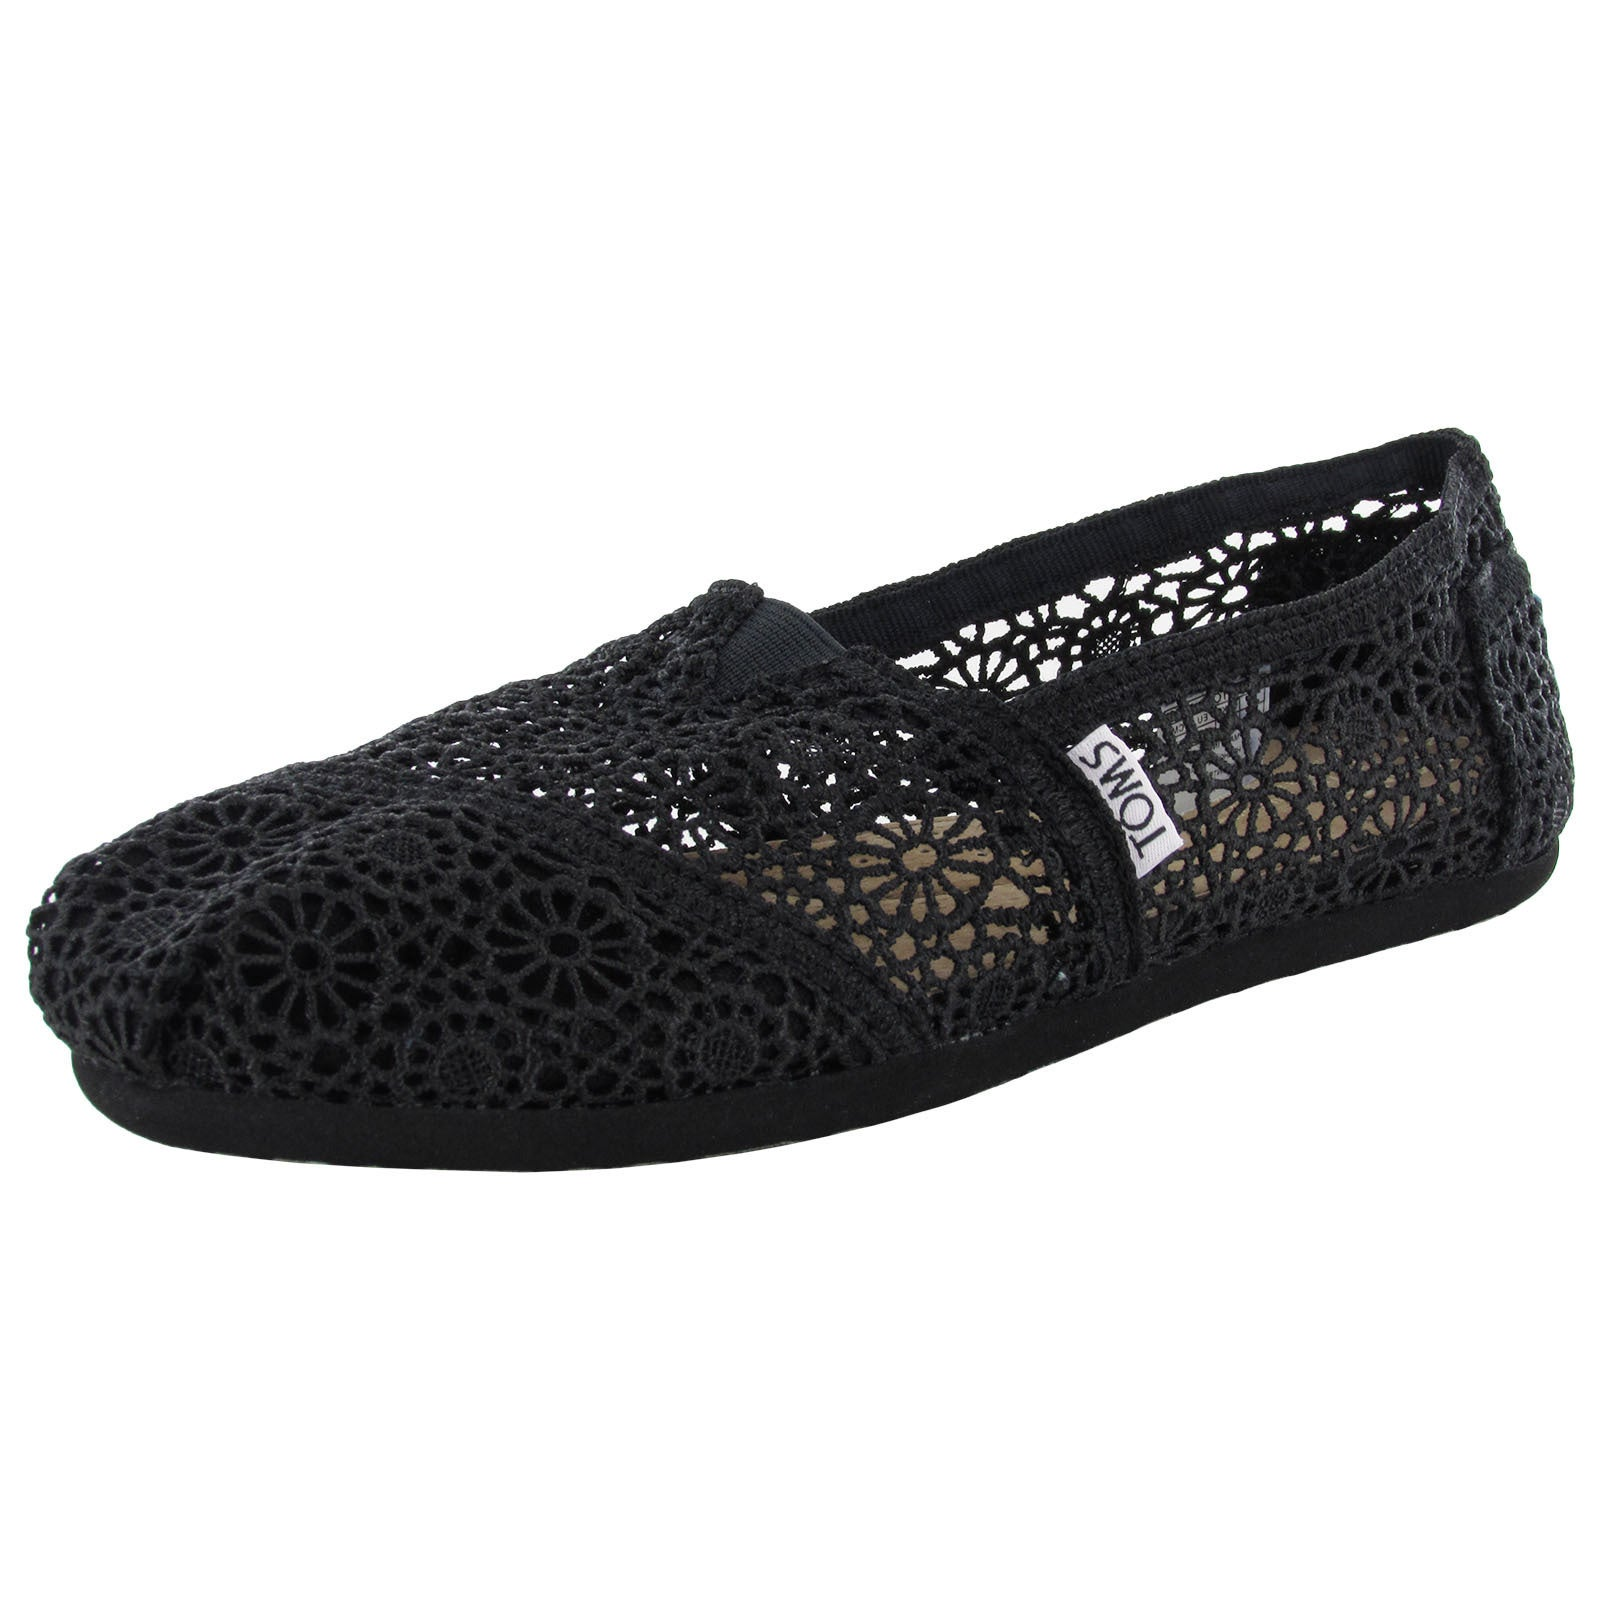 cab62a43df3 Shop Toms Women s Classic Crochet Slip On Alpargata Shoes - Free Shipping  On Orders Over  45 - Overstock - 11467866